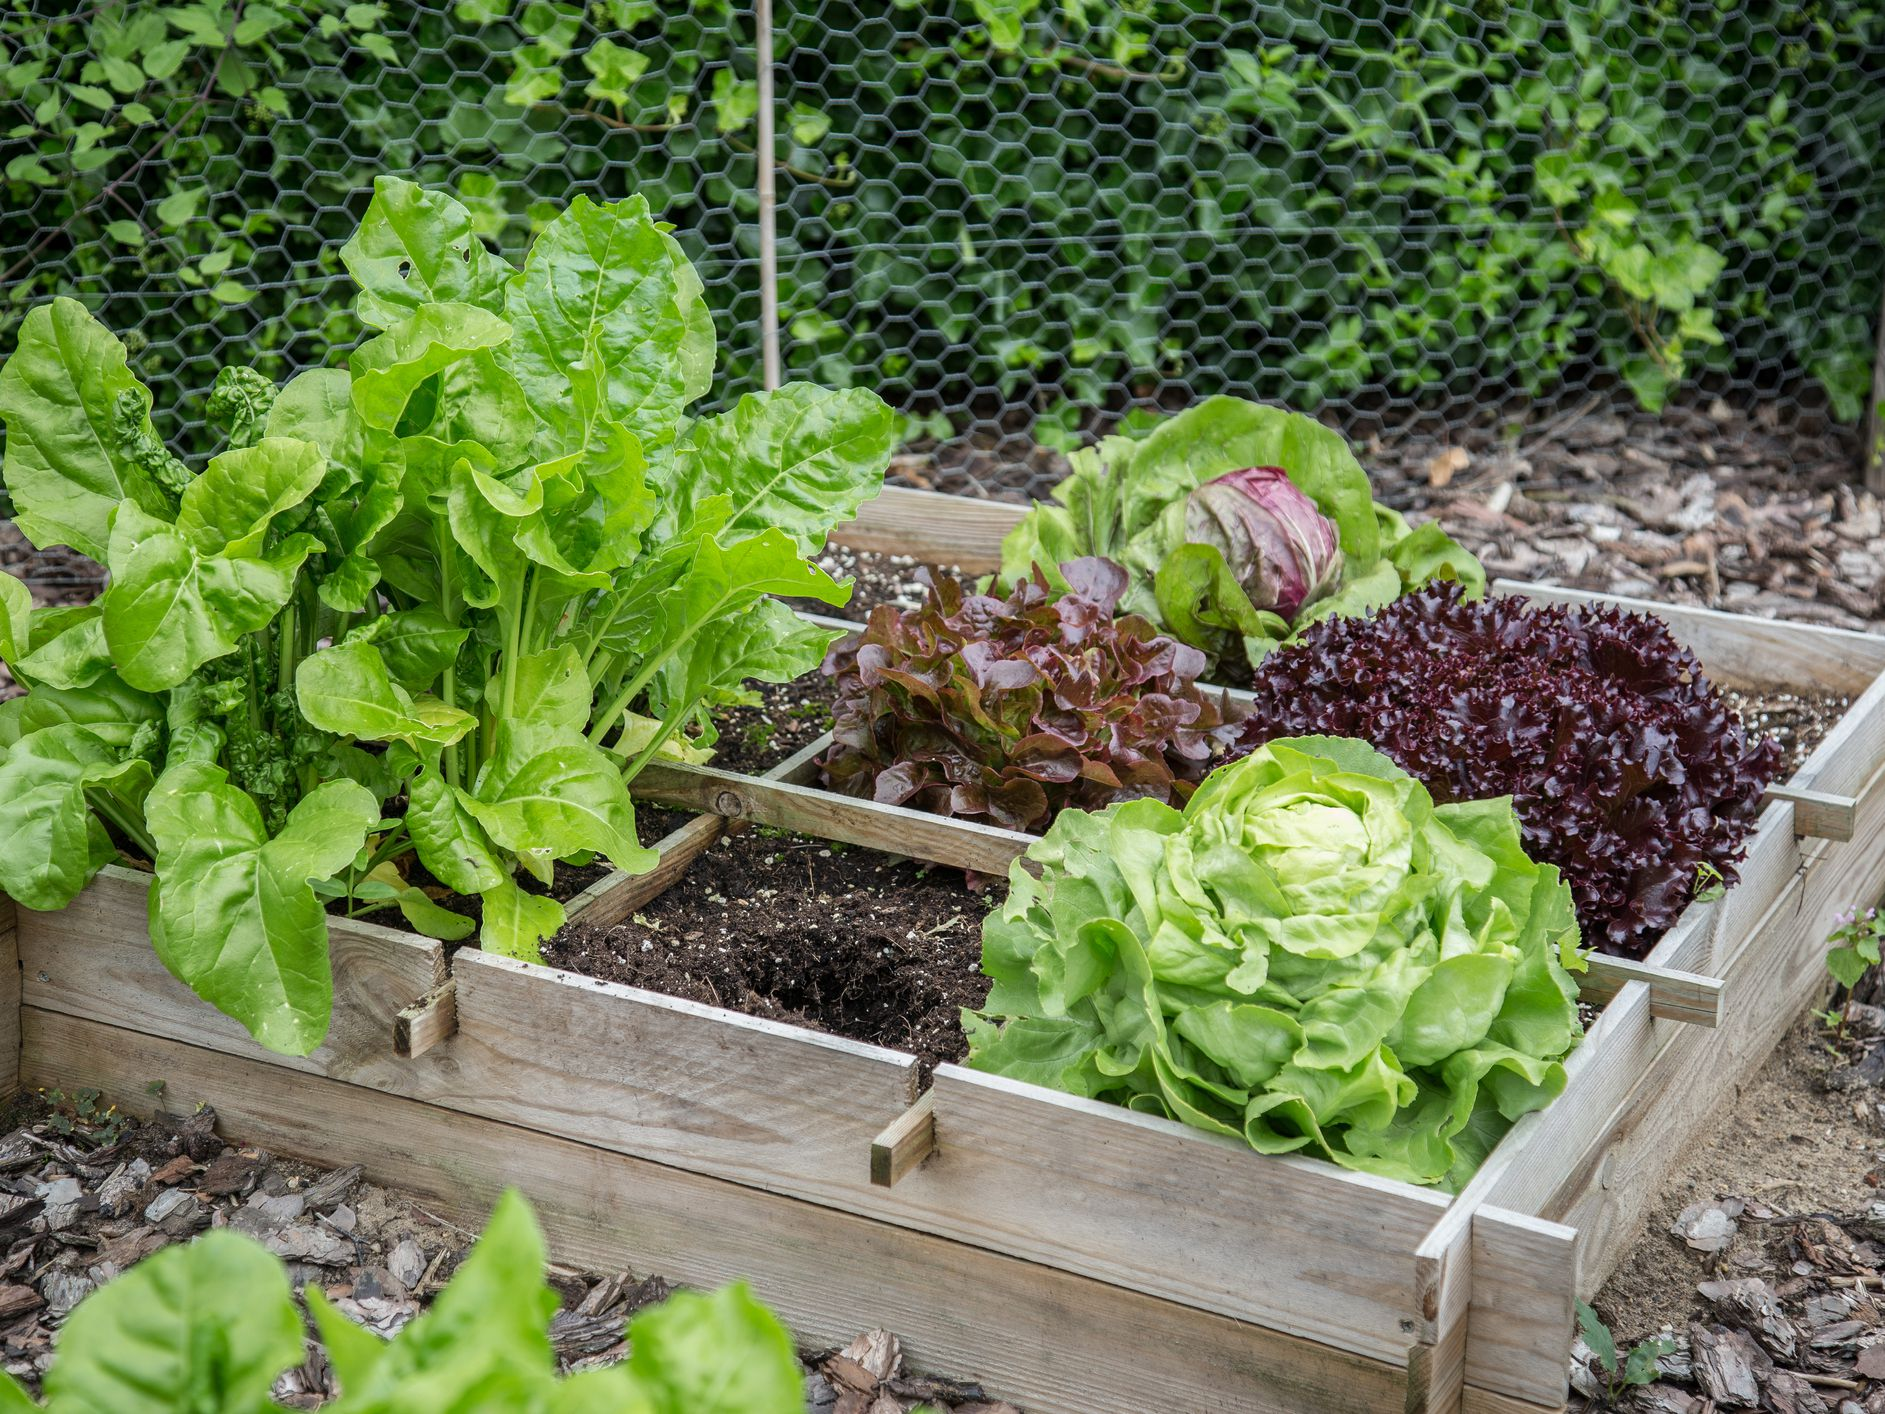 High Yield Vegetable Plants For Small Garden Spaces